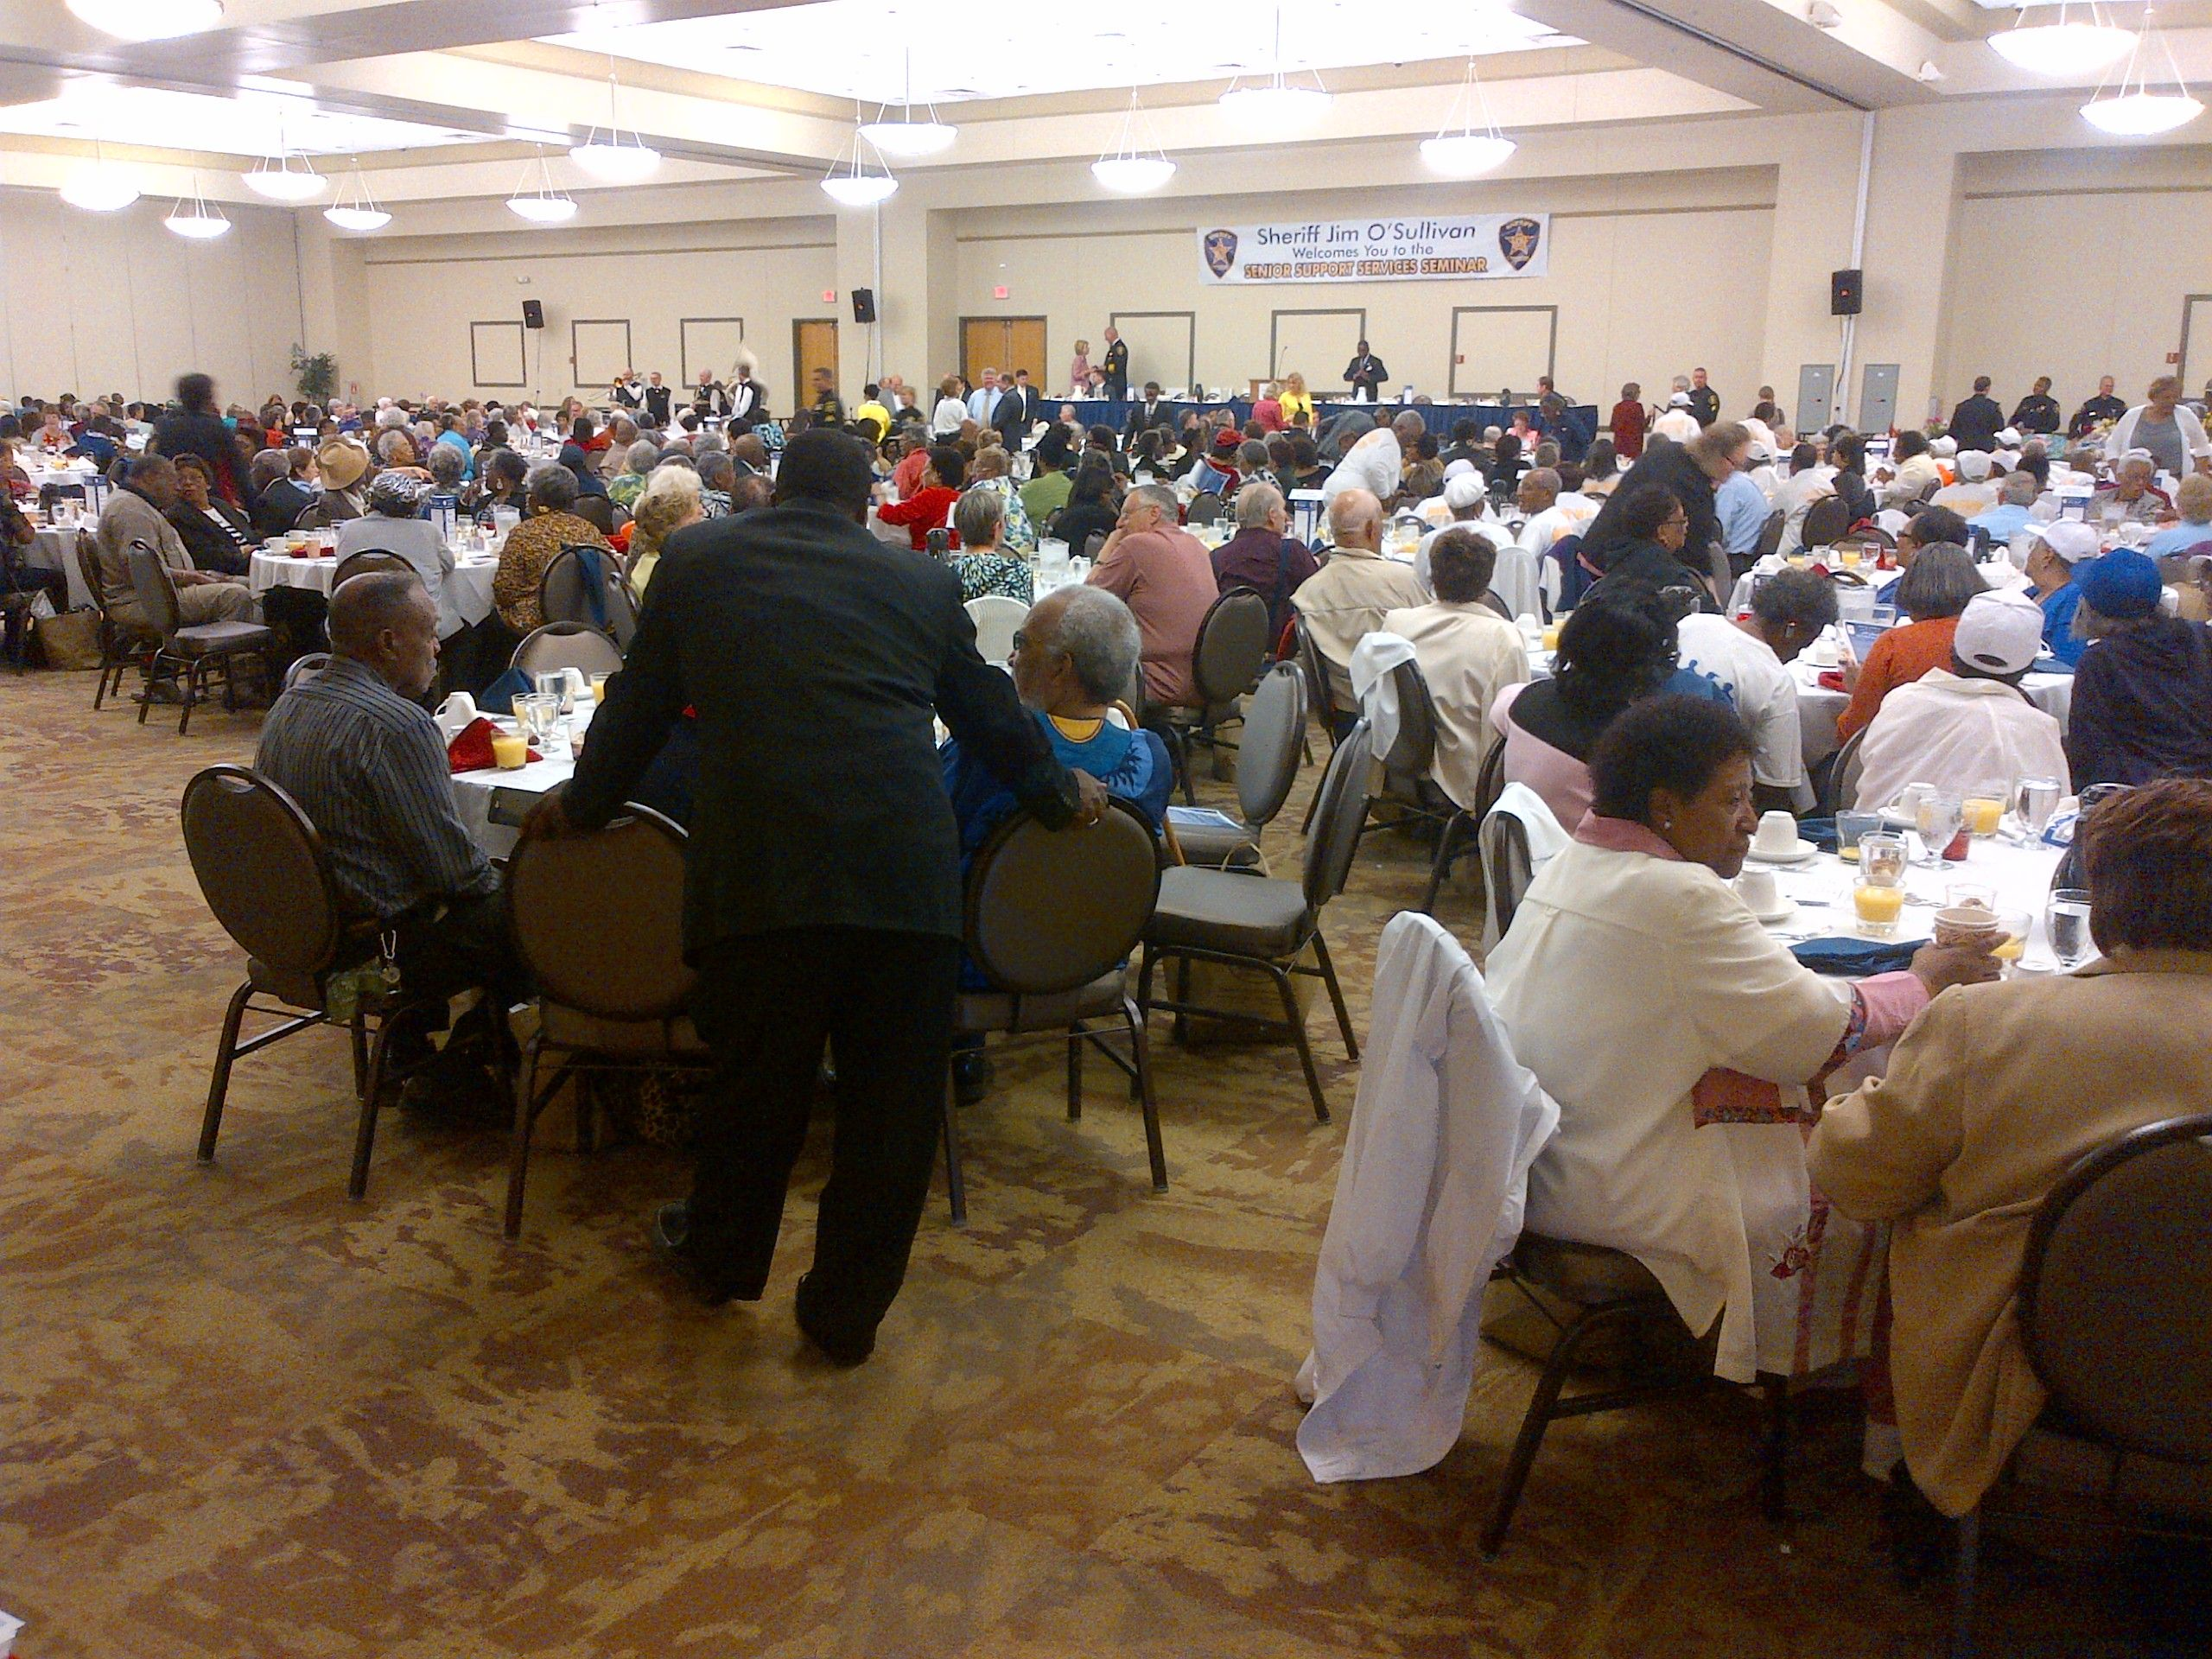 More than 1700 senior citizens attended the 25th annual